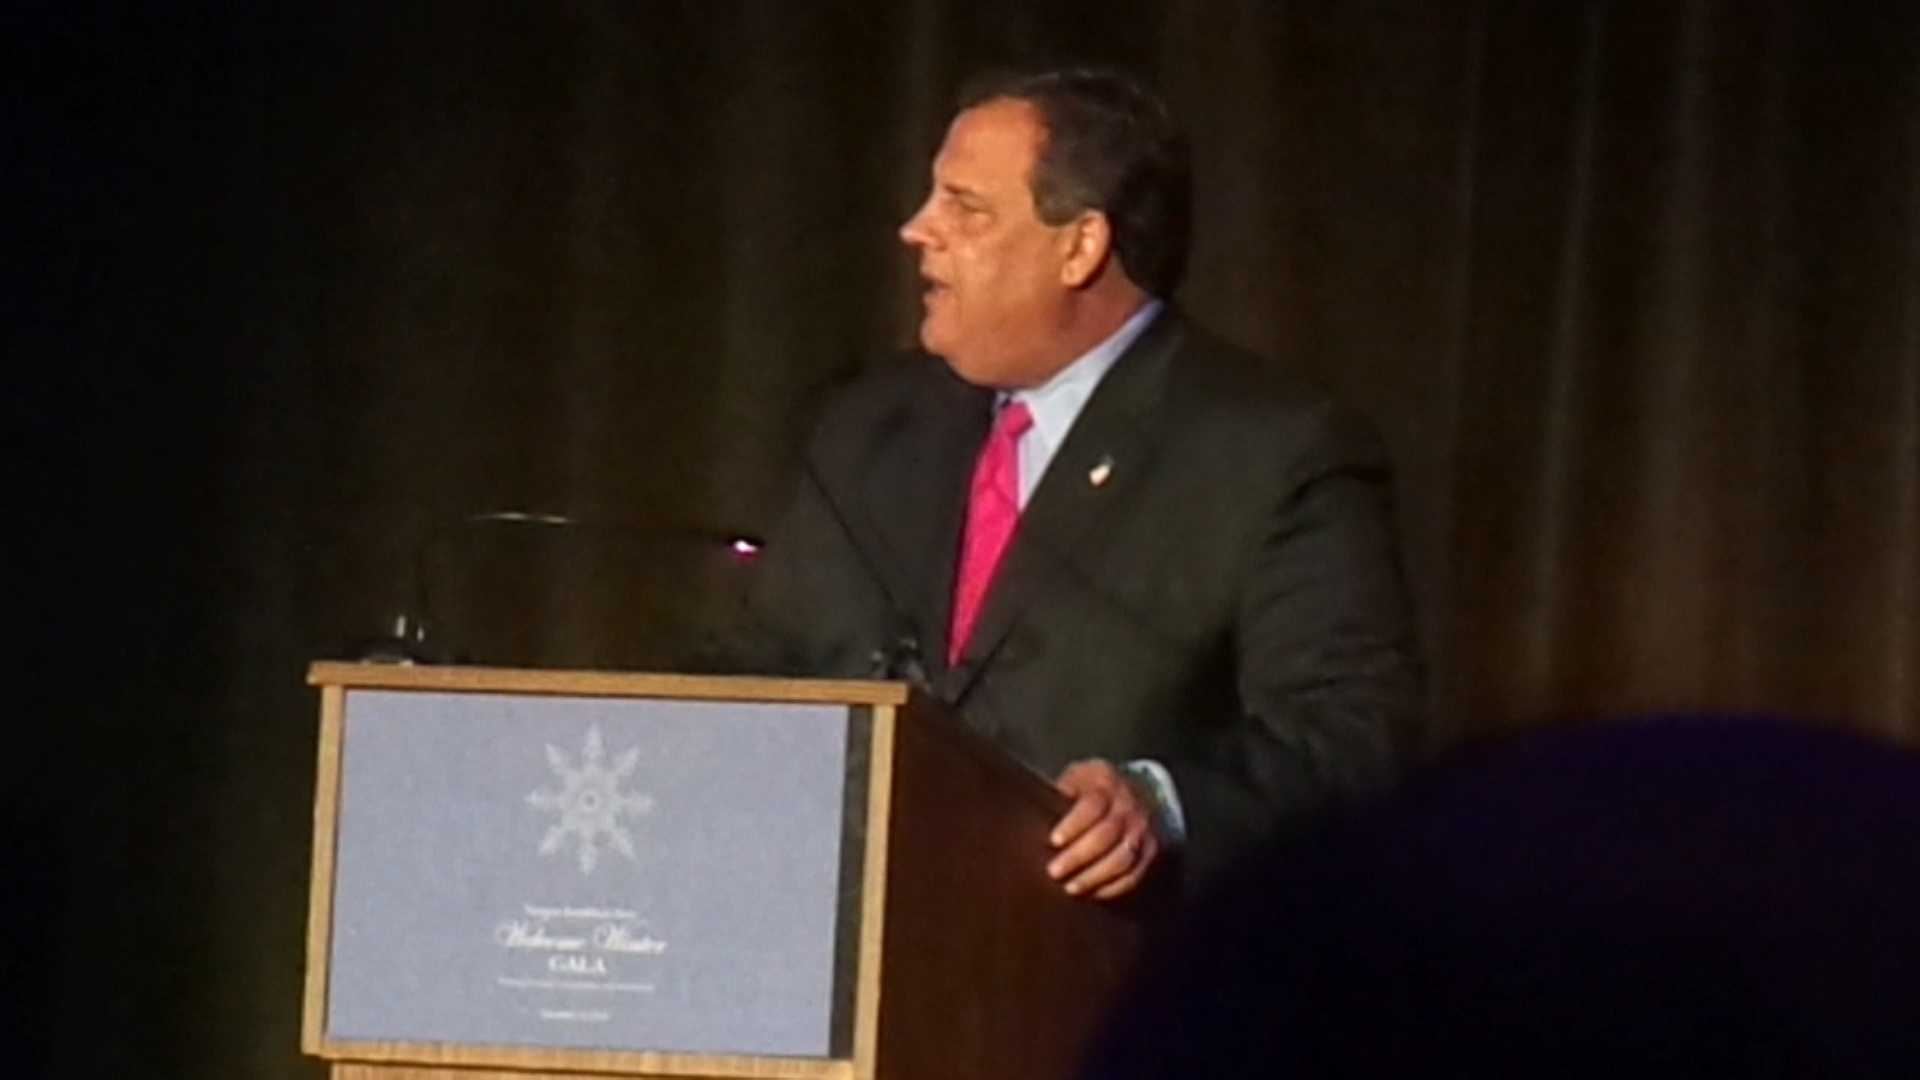 WPTZ obtained video of Chris Christie's speech at a Vermont Republican gala.